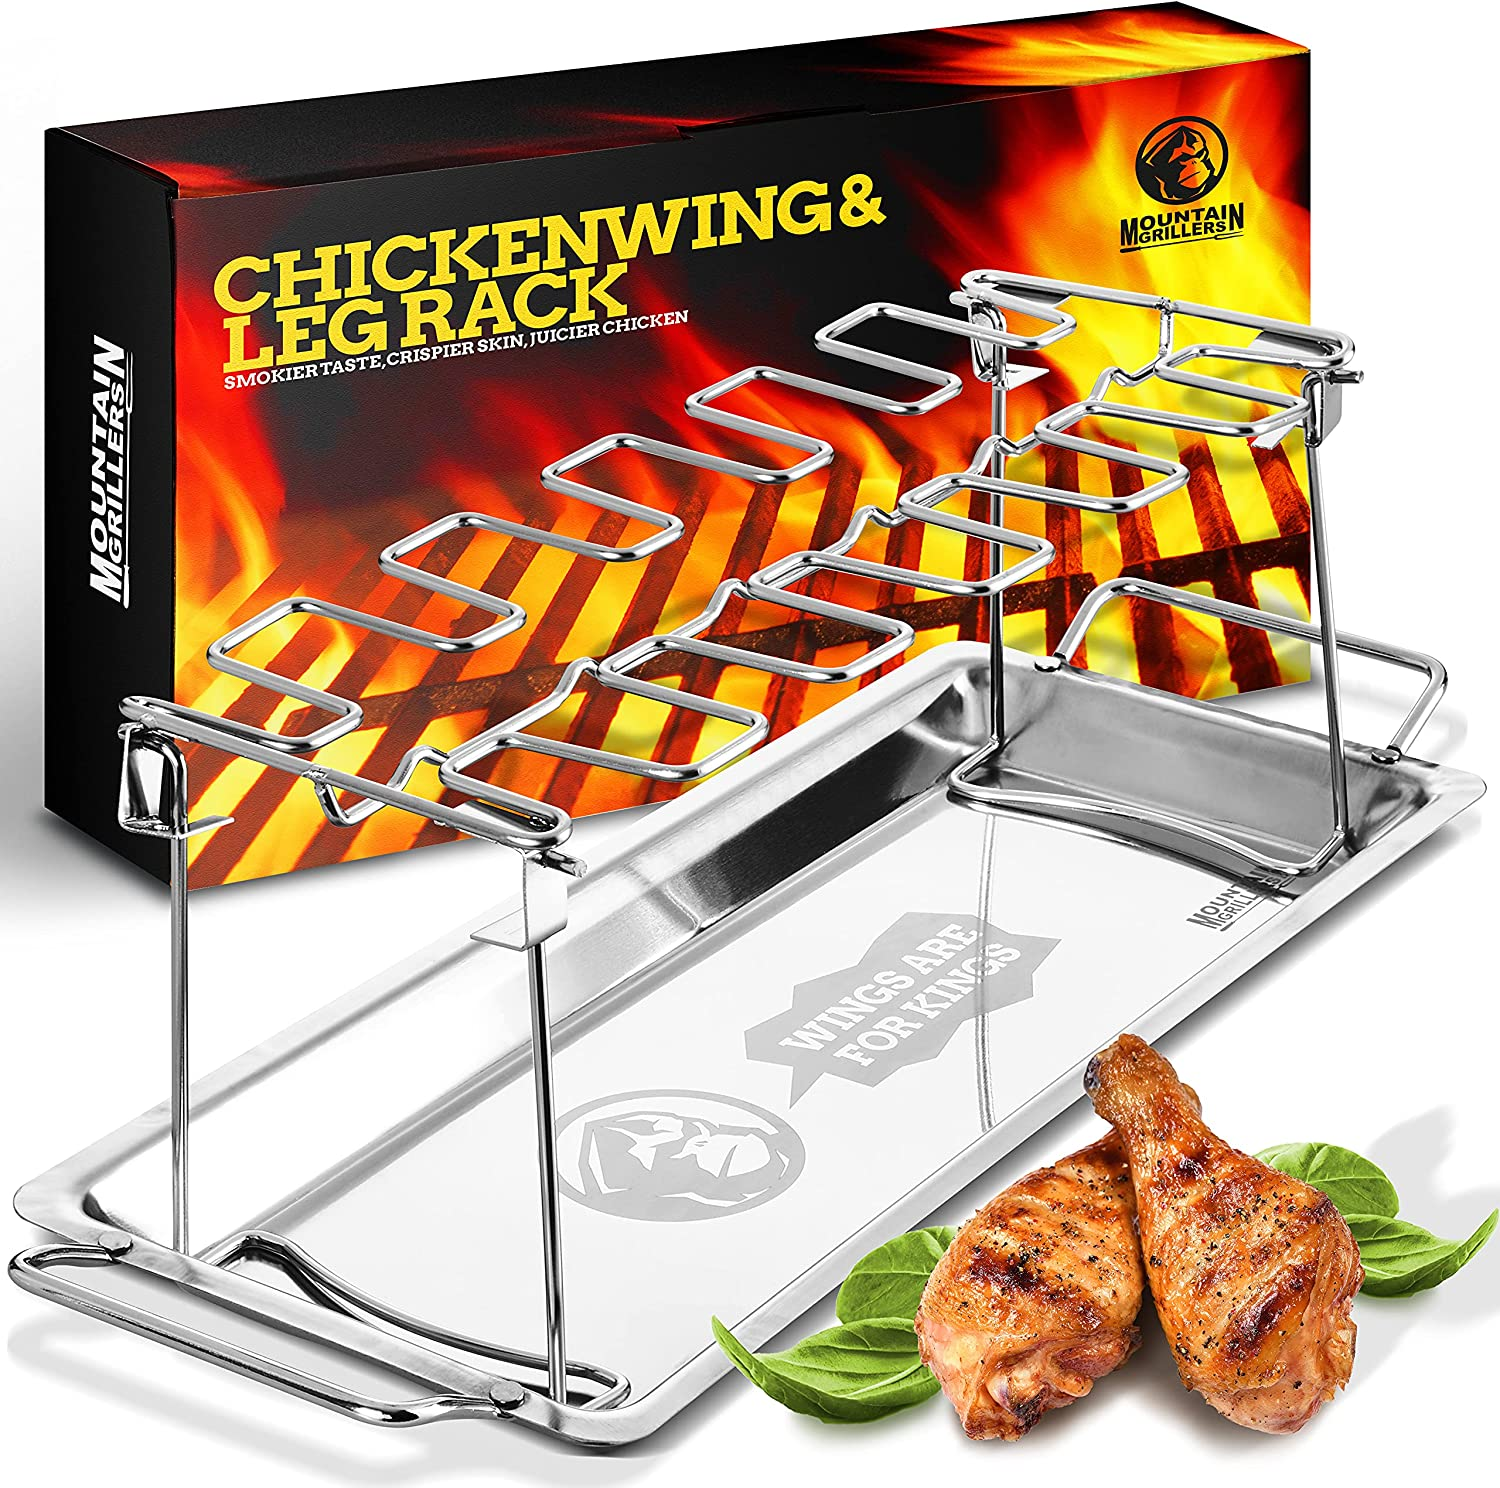 Chicken Drumstick Grill Rack - Large Capacity Smoker BBQ Chicken Wing Rack Can Hold Up 12 Legs, Wings, Thighs, Drumsticks - Made From Sturdy Stainless Steel With A Locking Mechanism & Deep Drip Tray